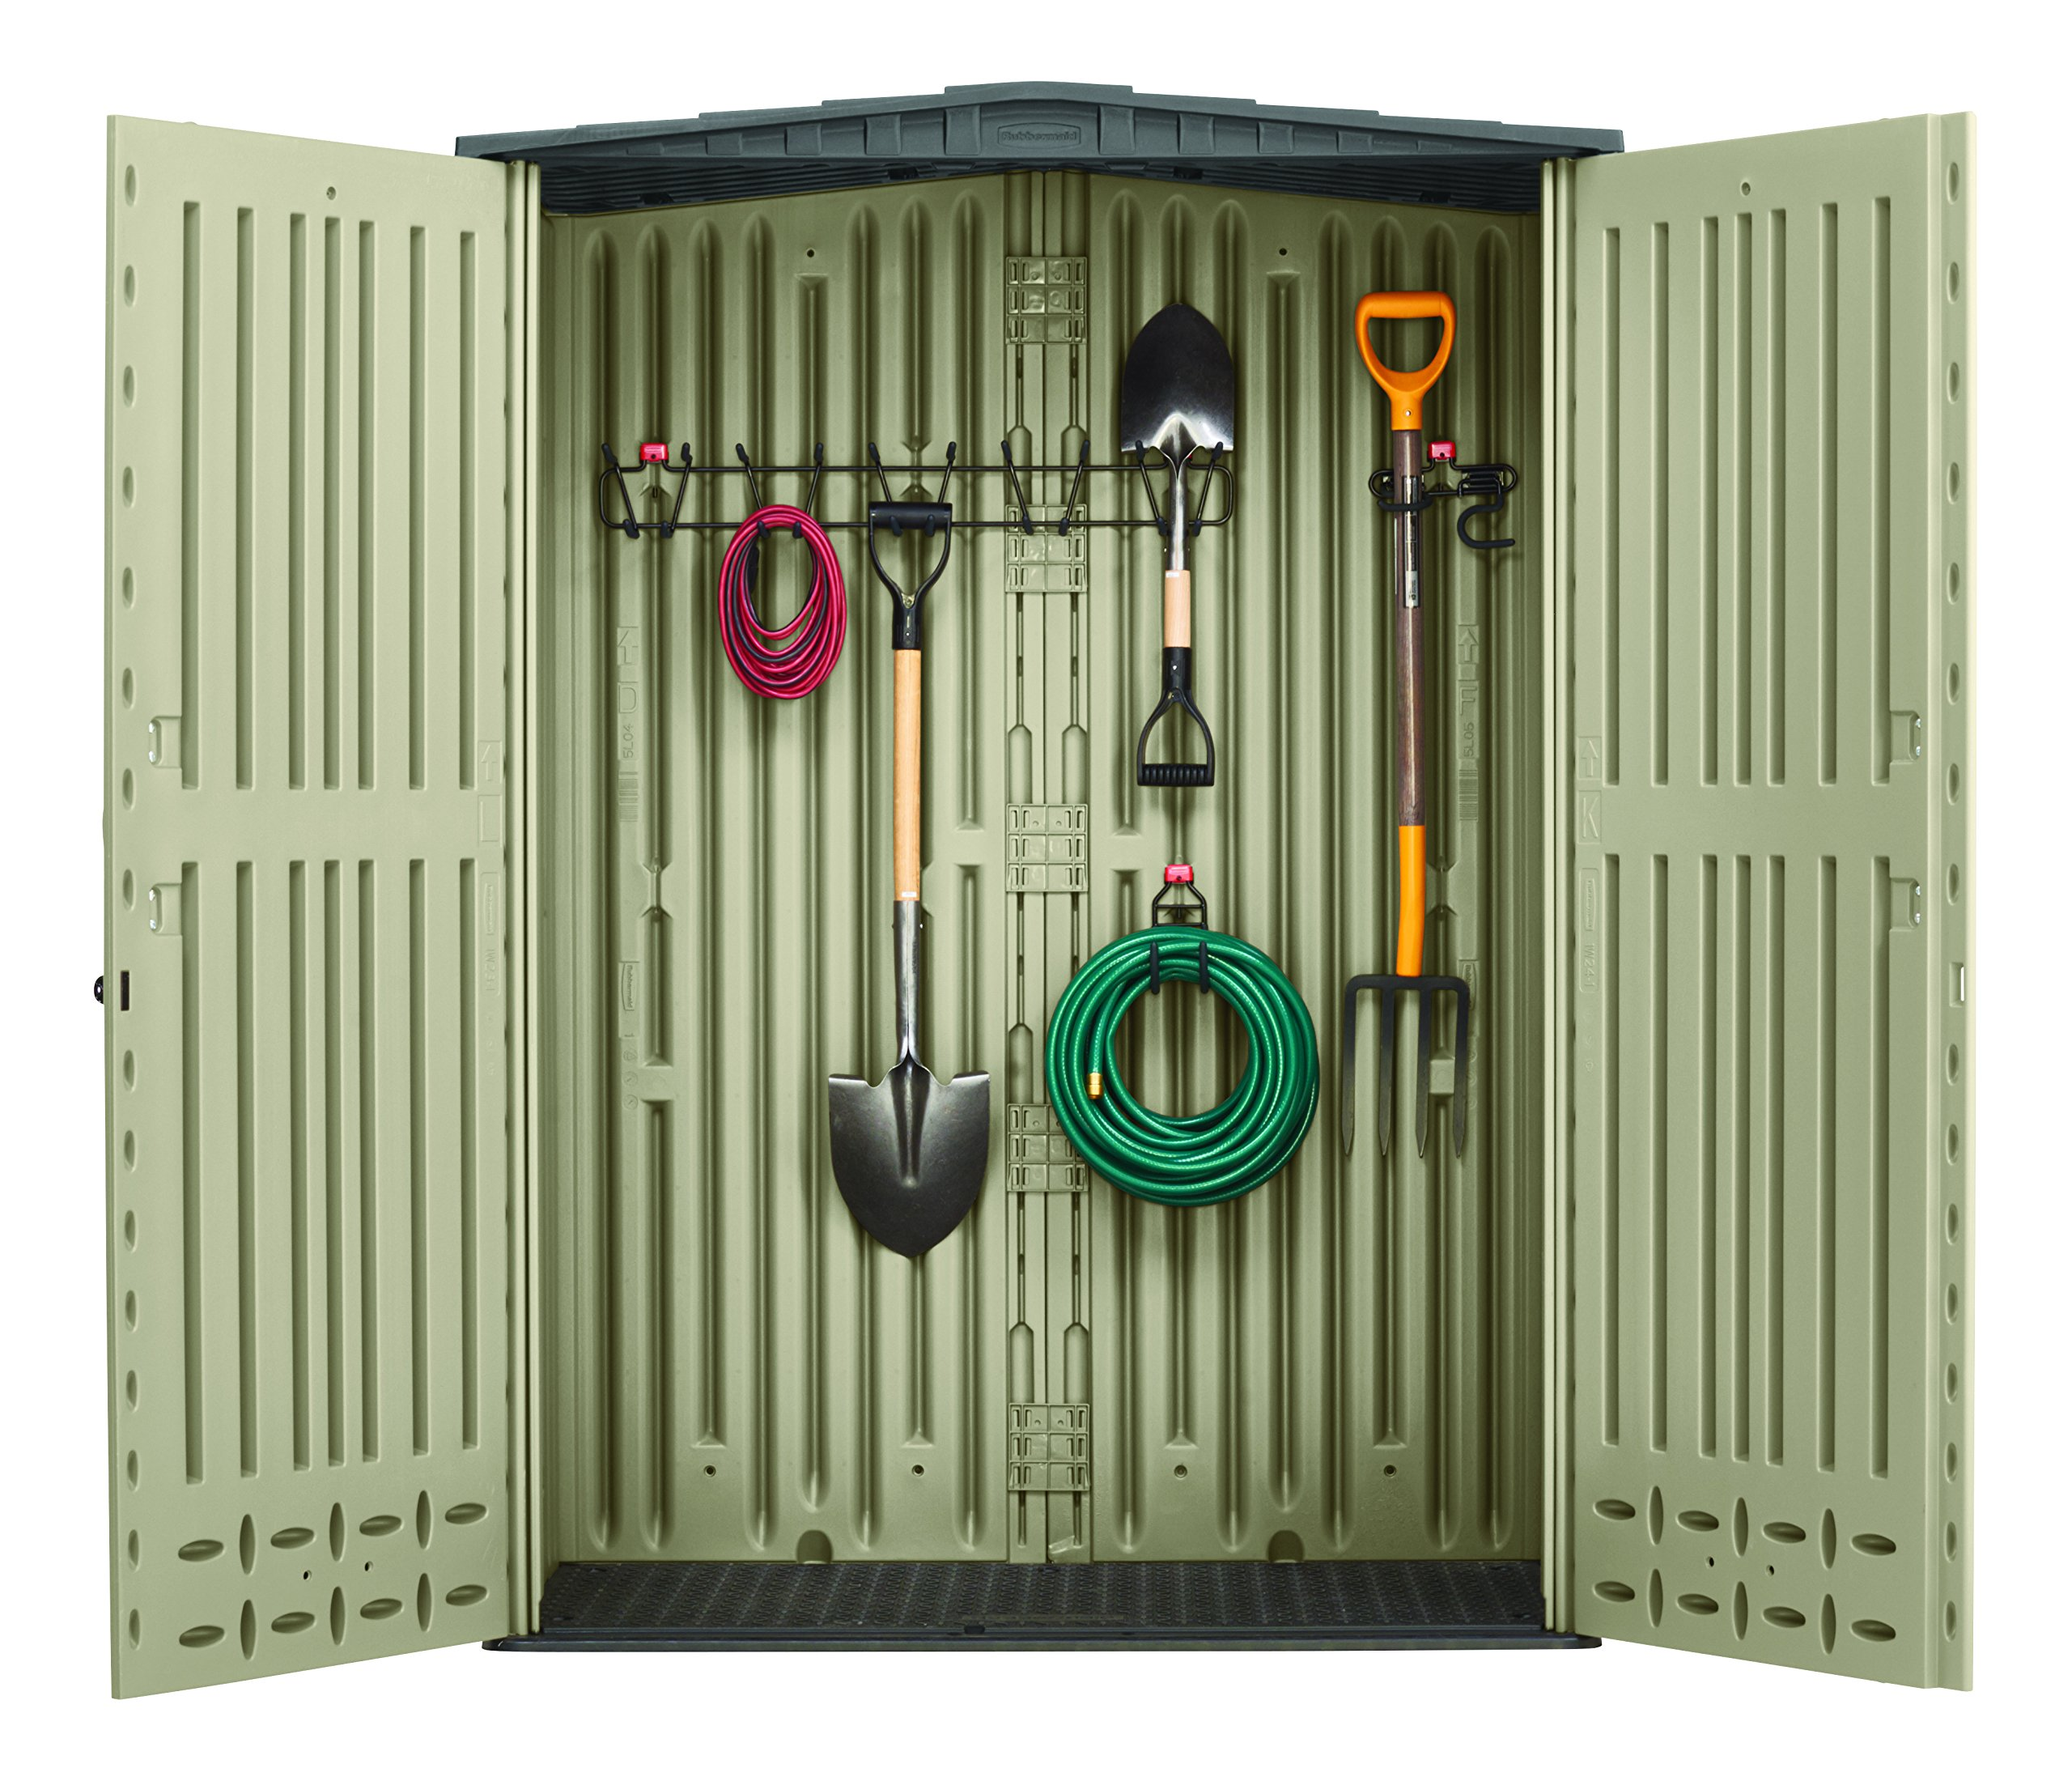 Rubbermaid Storage Shed Storage Hooks and Rack Accessories, 3-Piece Set (1825046) by Rubbermaid (Image #2)